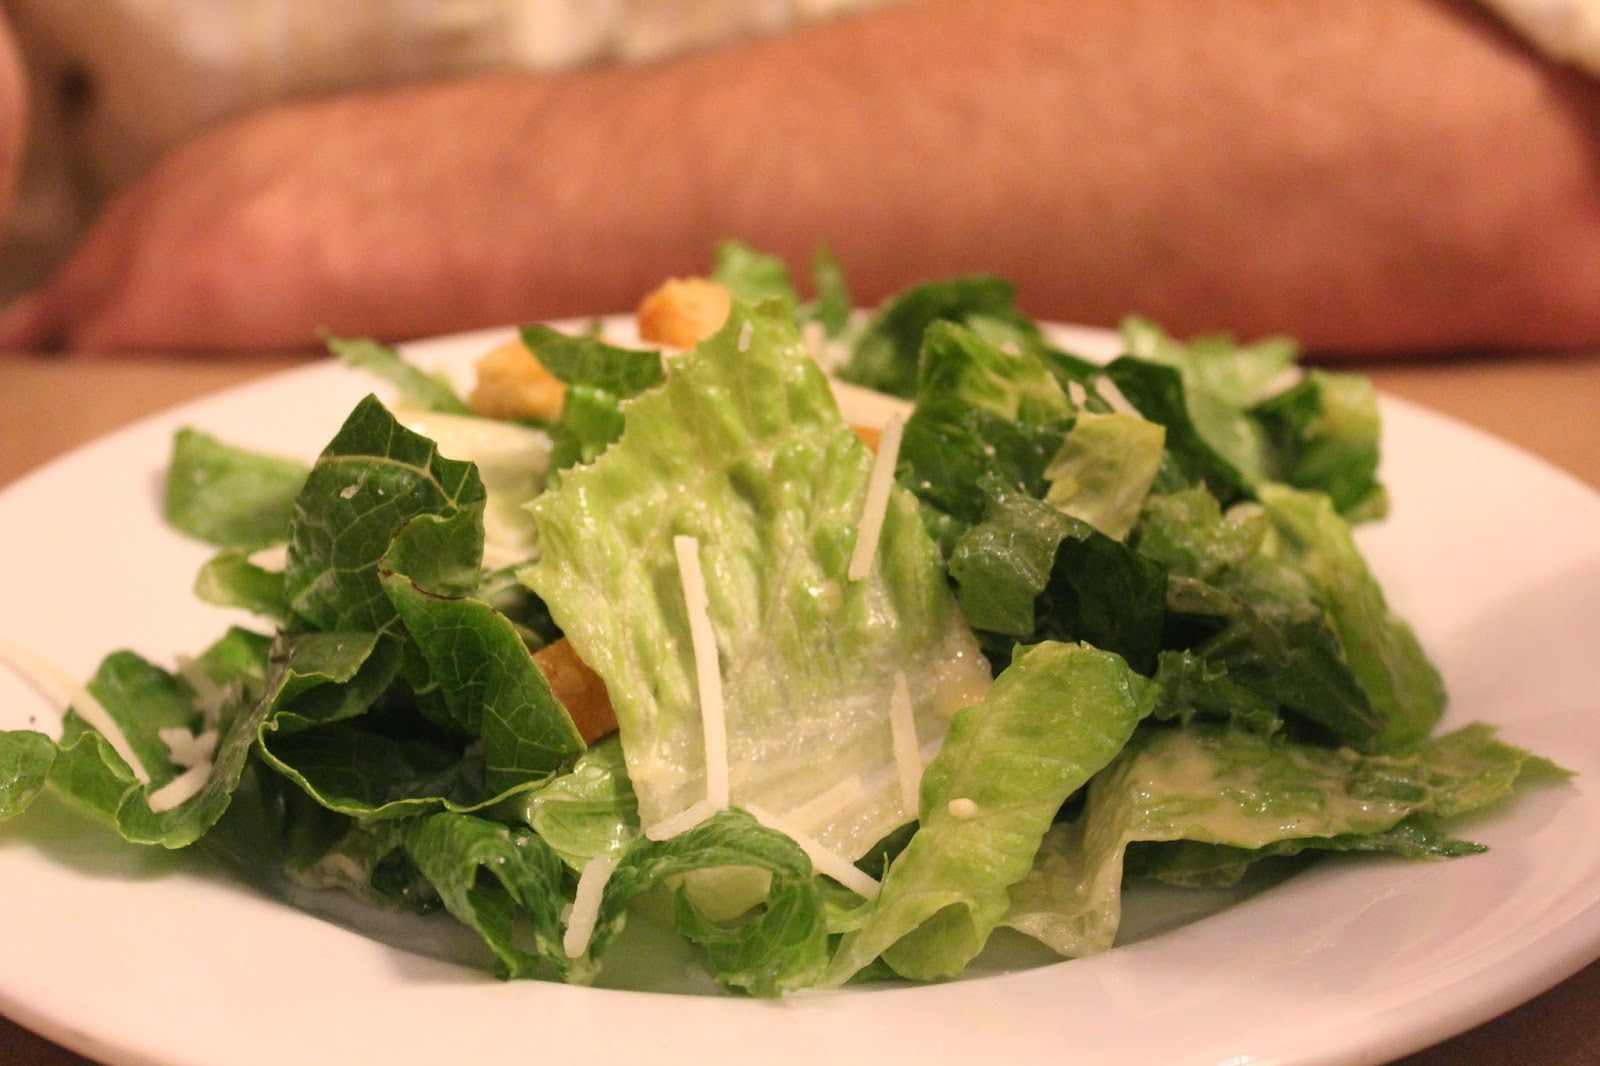 Caesar salad at Gibbet Hill Grill, Groton, Mass.